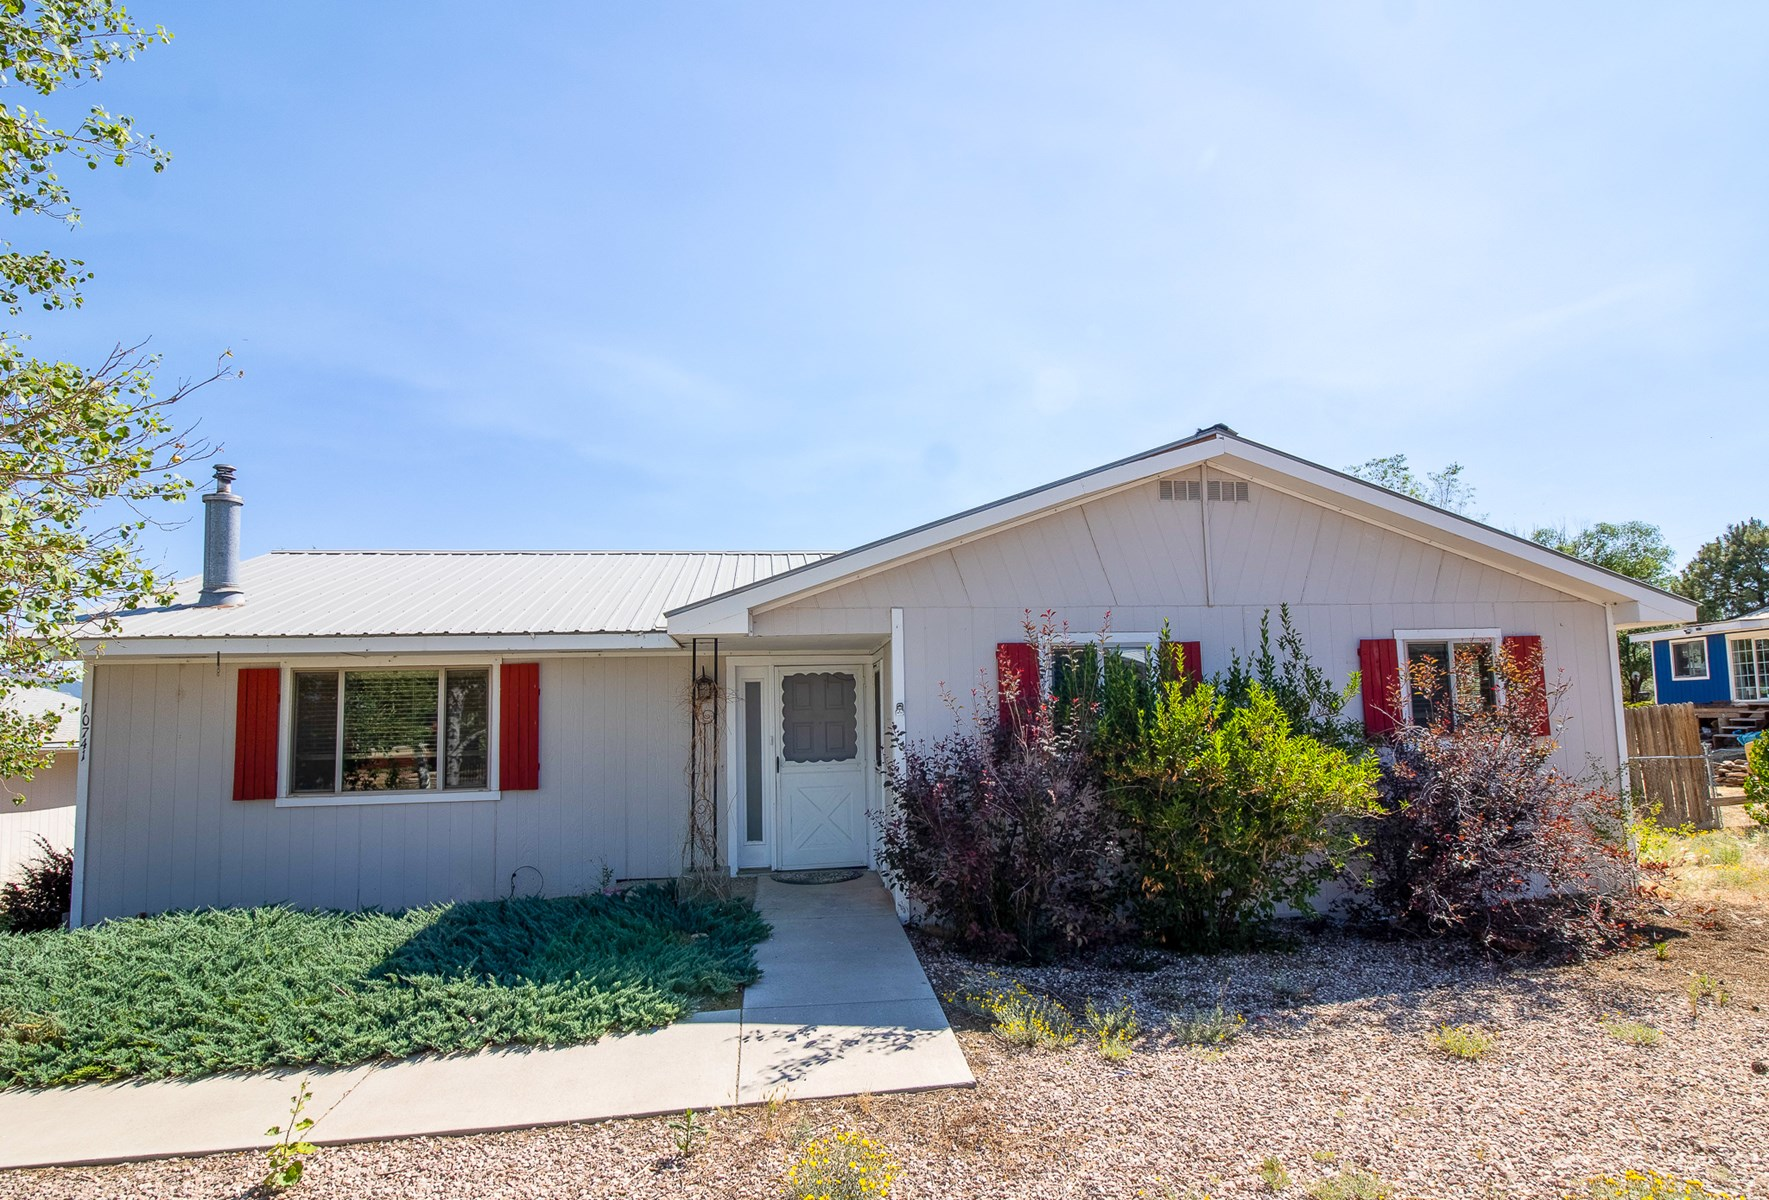 Country Family Home For Sale in Cortez, Colorado!